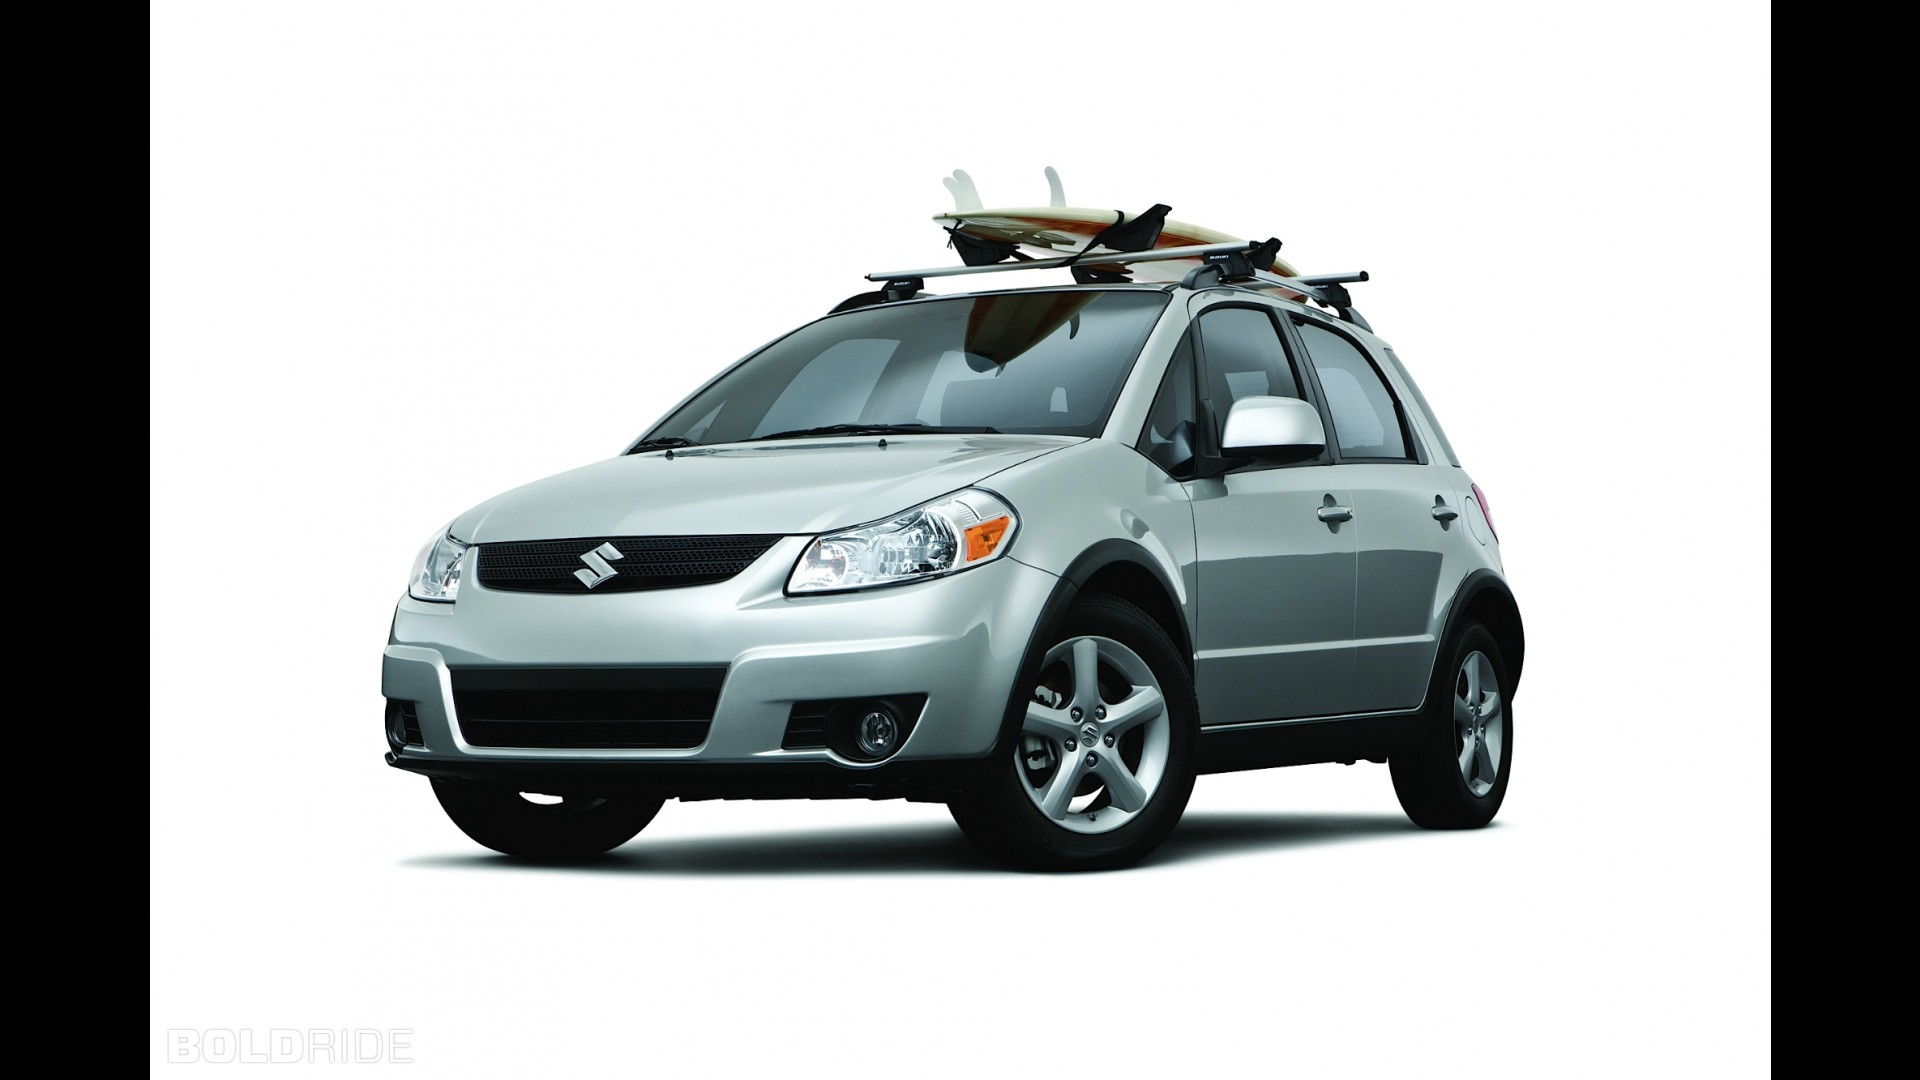 suzuki sx4 awd crossover. Black Bedroom Furniture Sets. Home Design Ideas